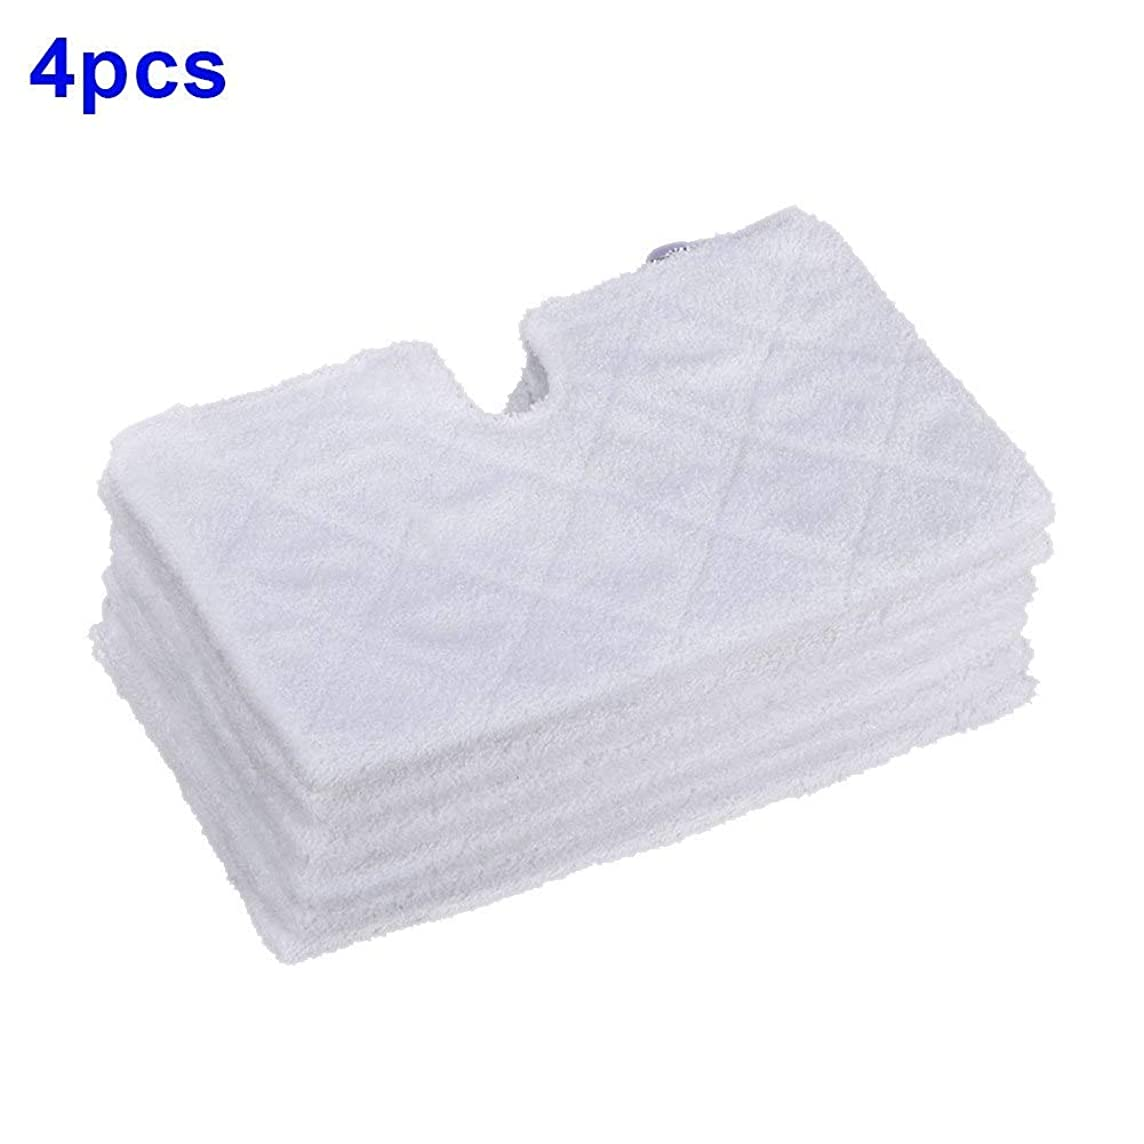 Mop Steam - Cleaning Pads Washable Replacement Durable Mop